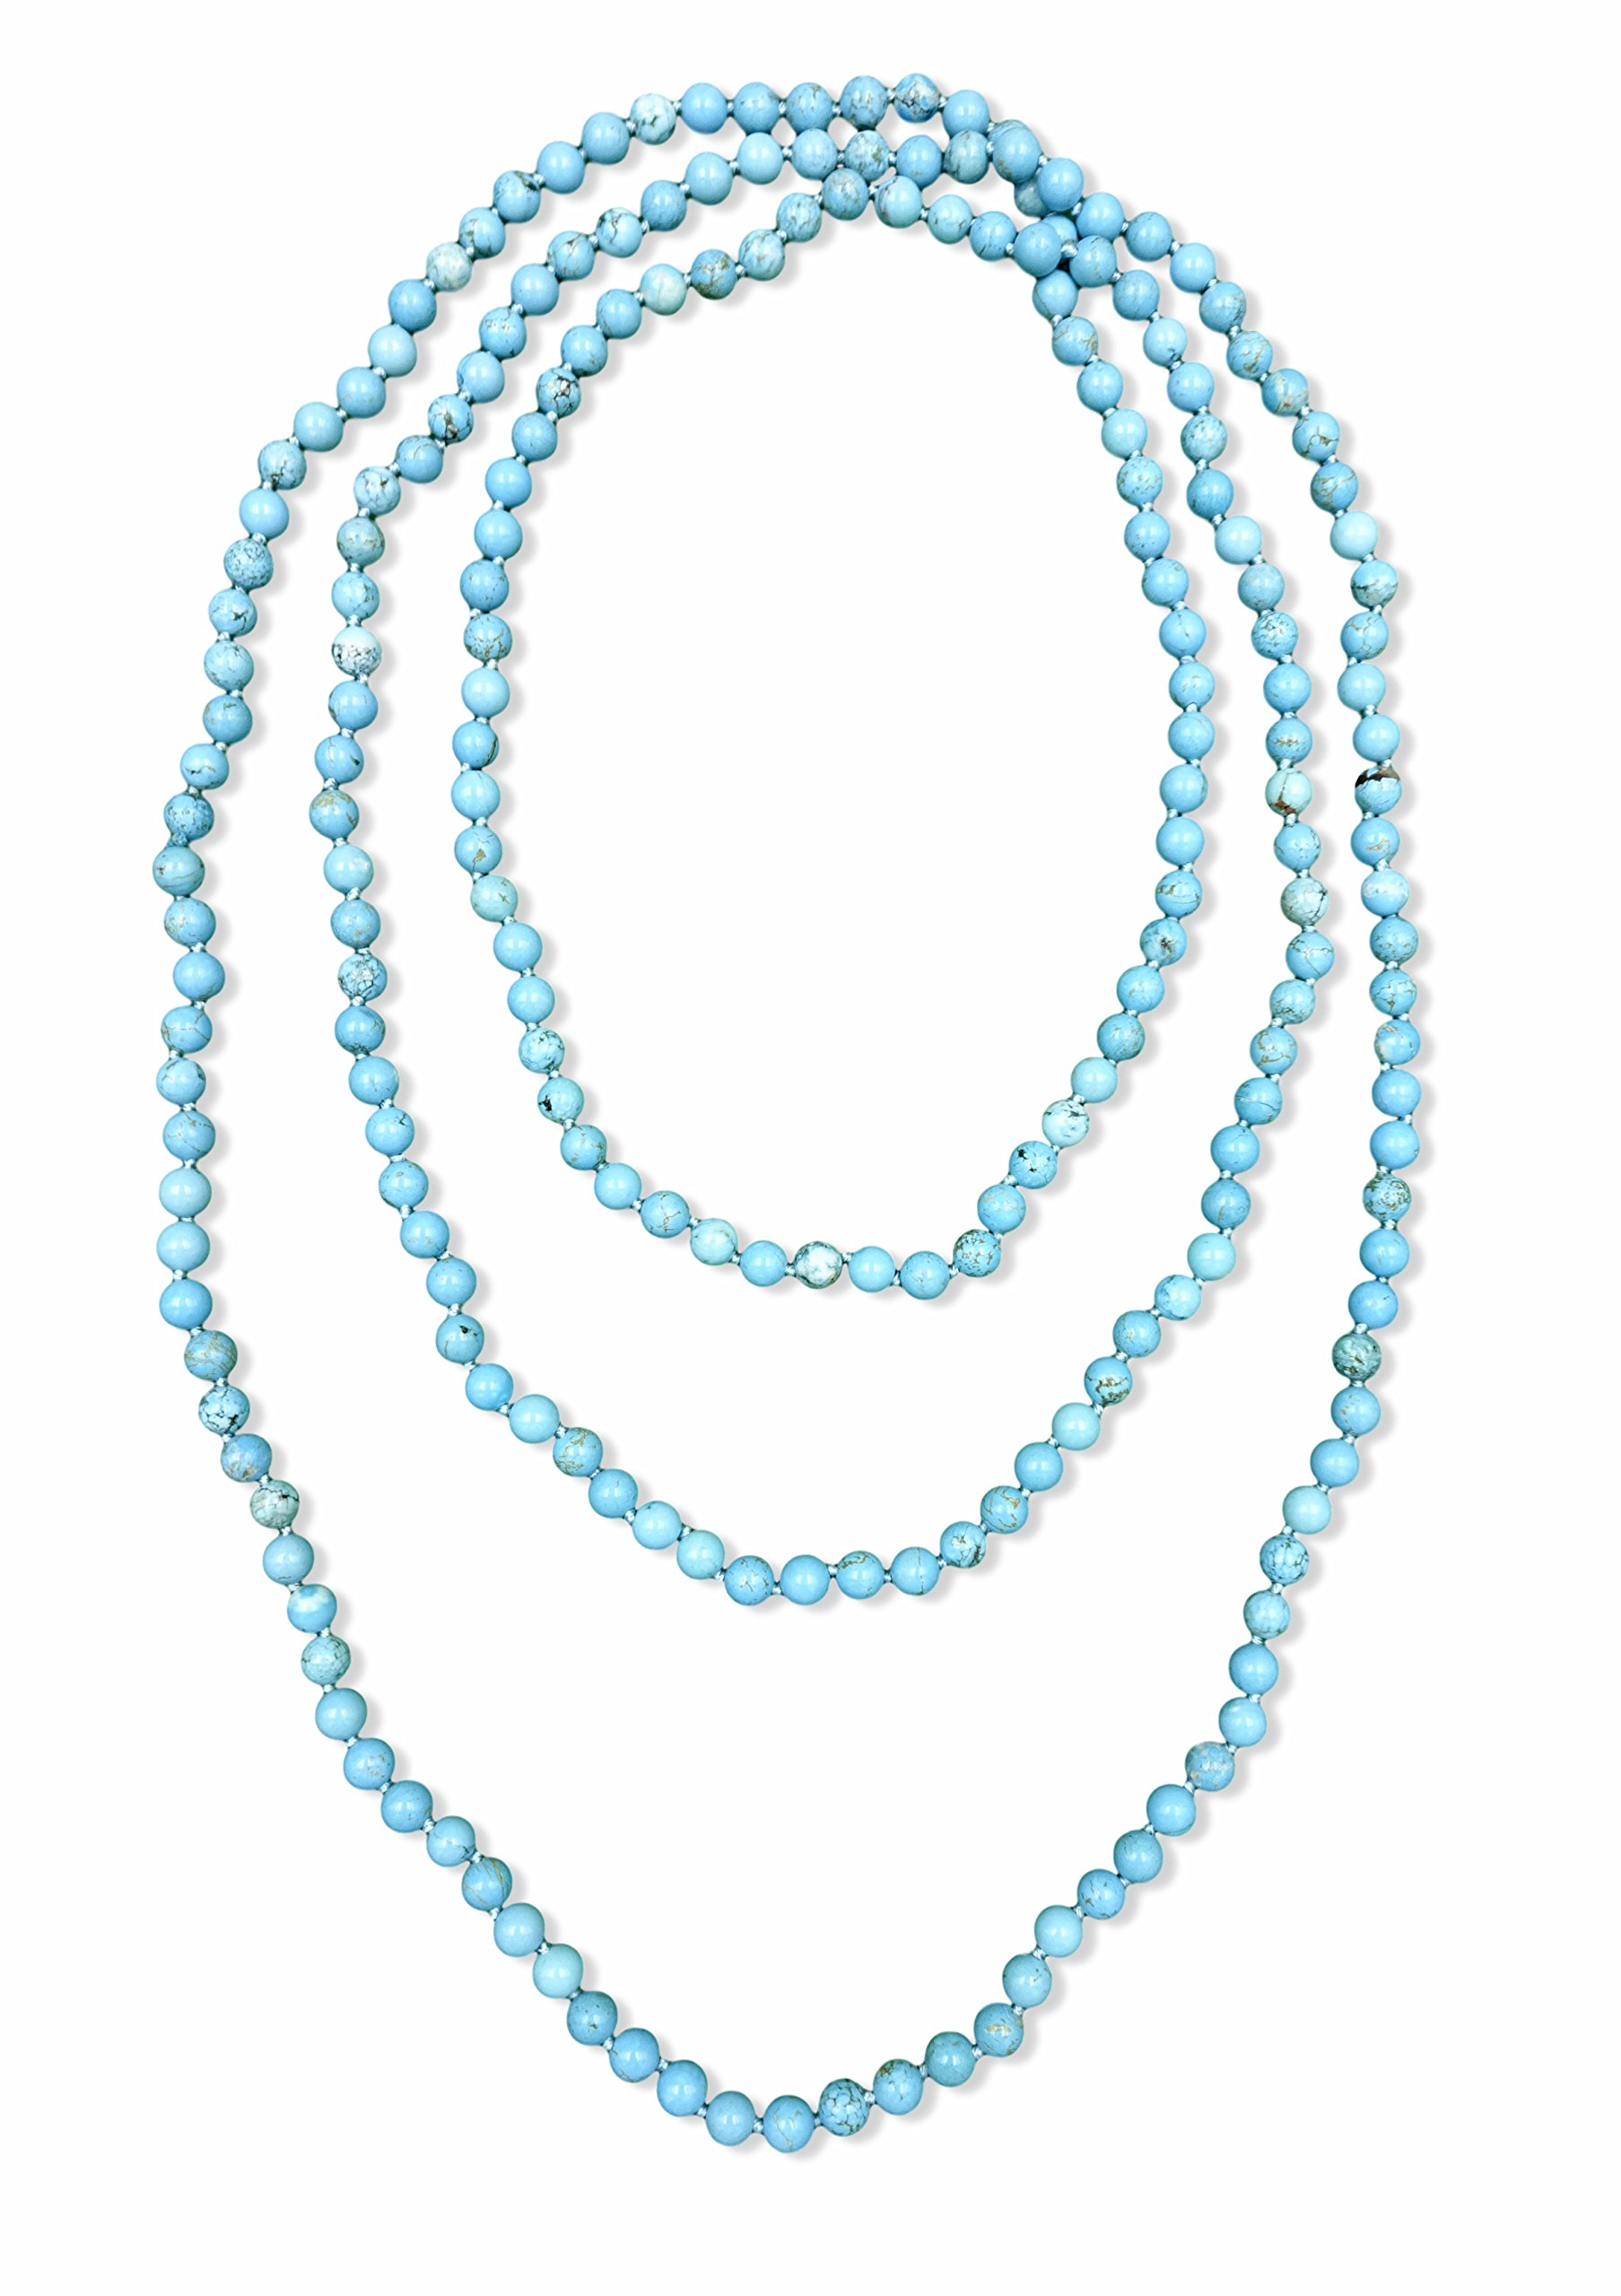 BjB 80 Inch Long 8MM Polished Blue Turquoise Multi-layer Long Endless Infinity Beaded Necklace.